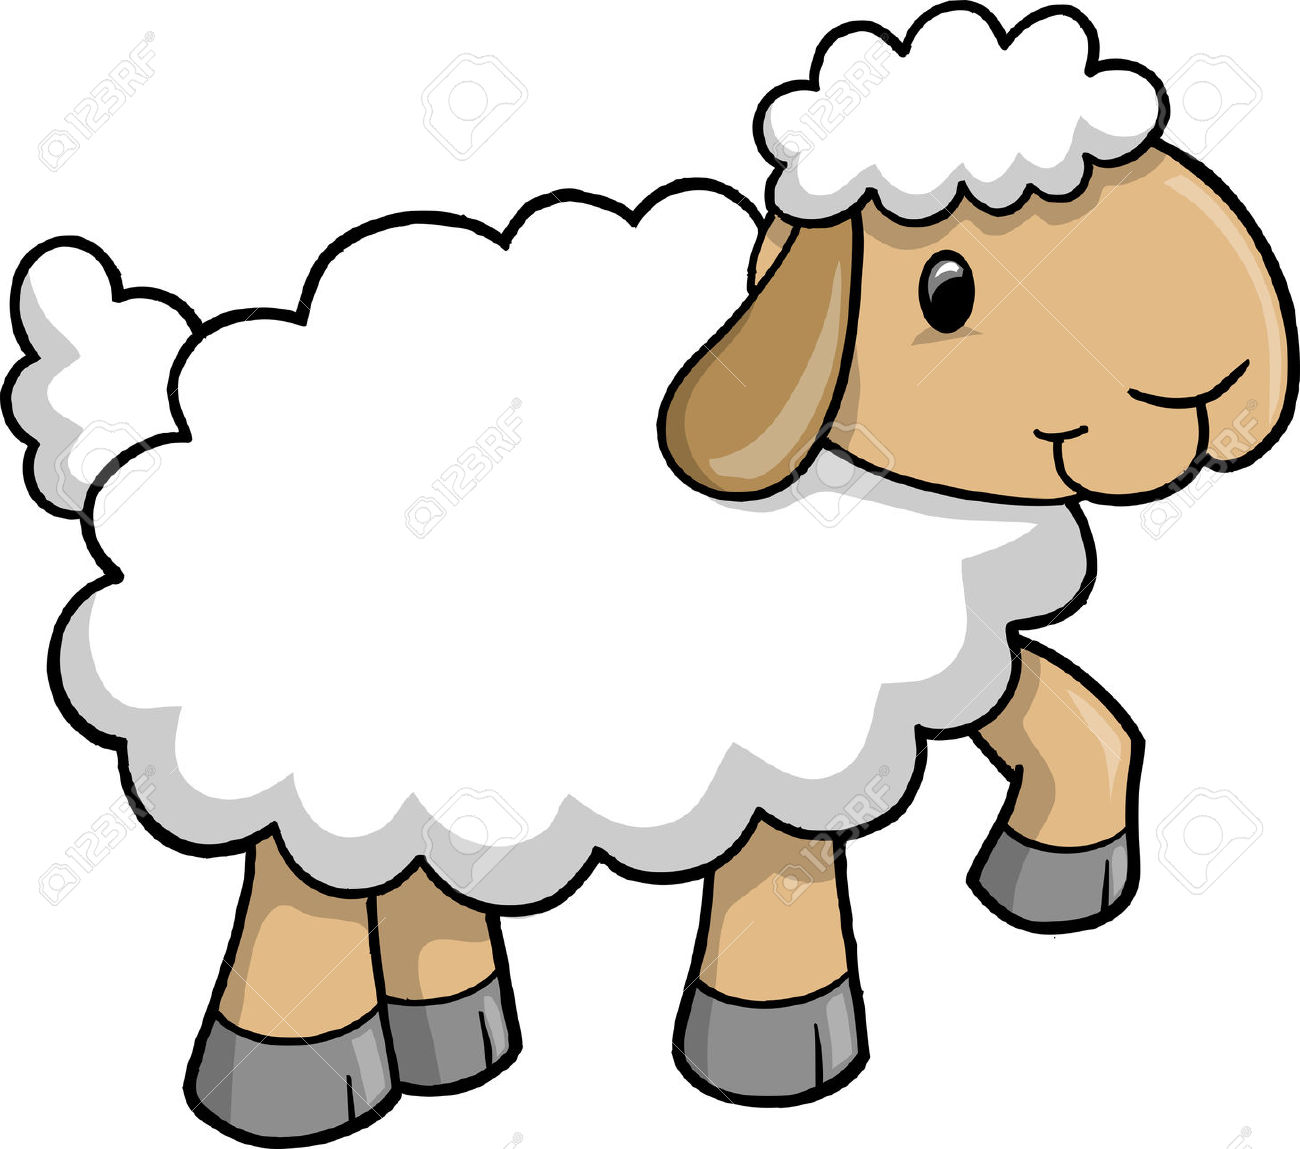 image royalty free library Free download on webstockreview. Lamb clipart.